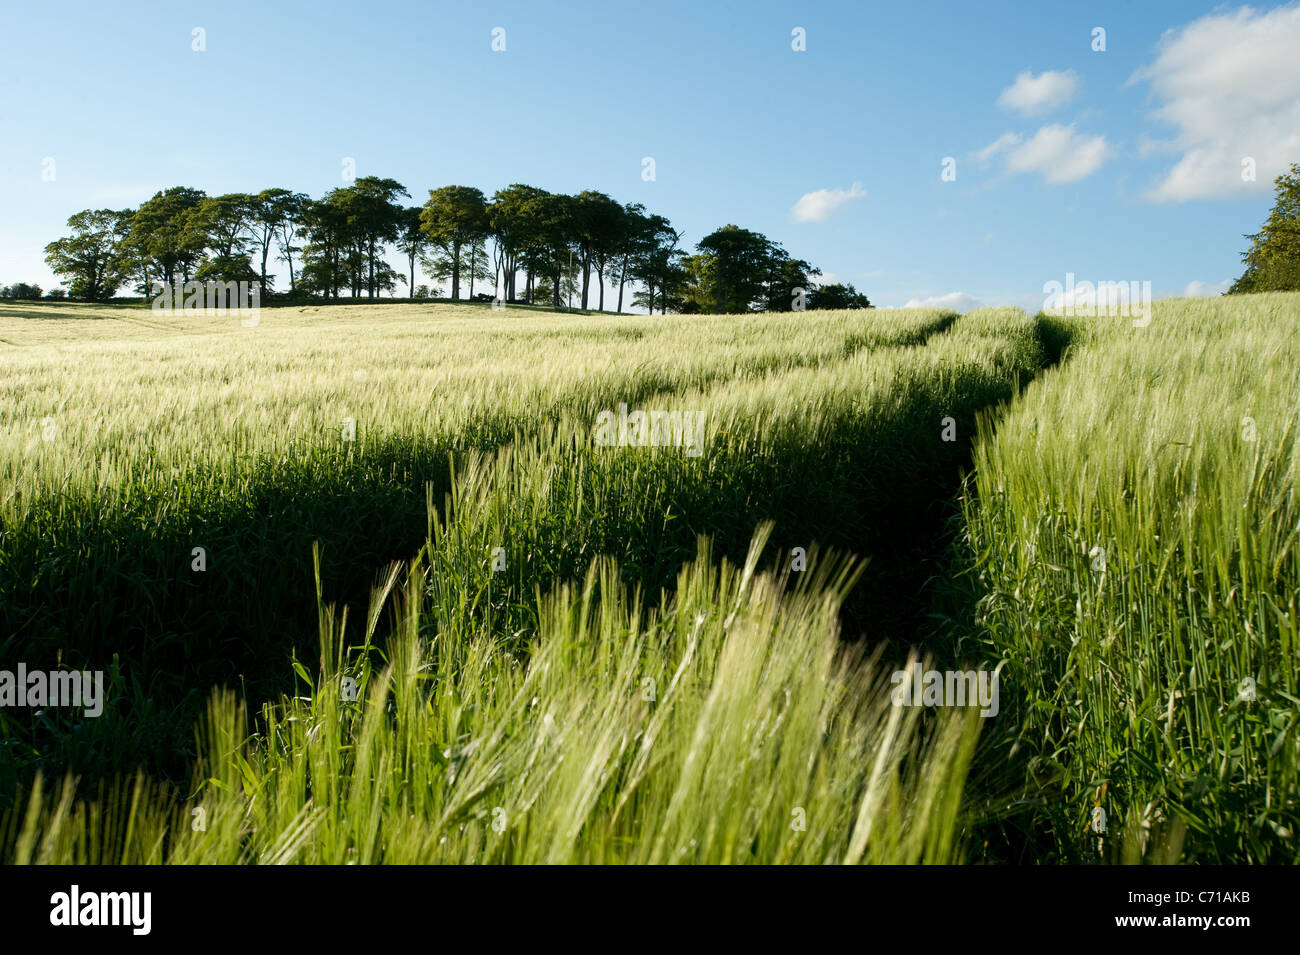 Wheat field at Dromore - Stock Image